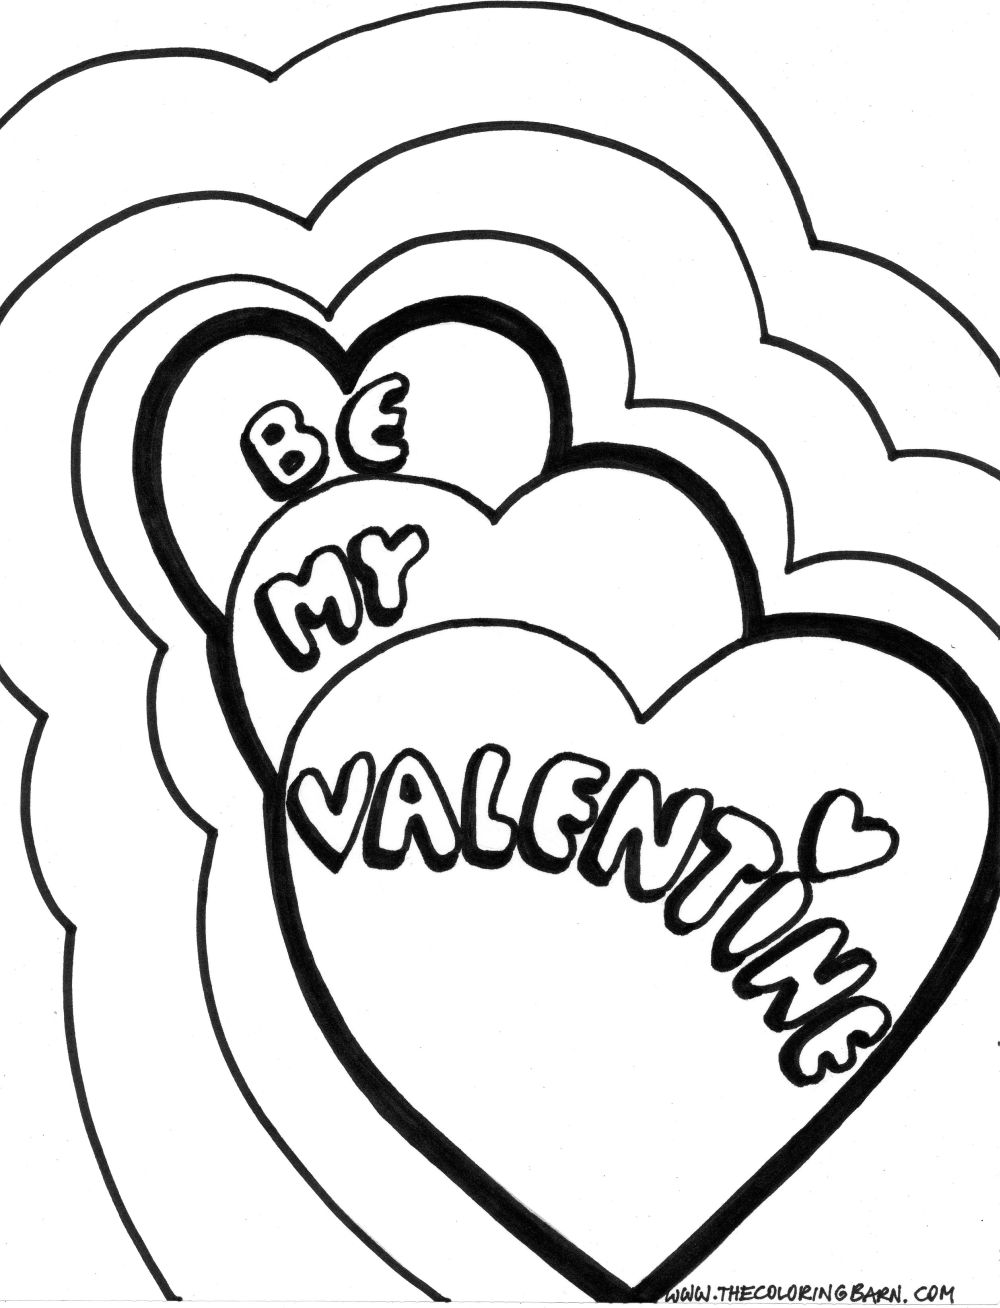 printable valentines coloring pages - Valentine's Day Coloring Pages Parents